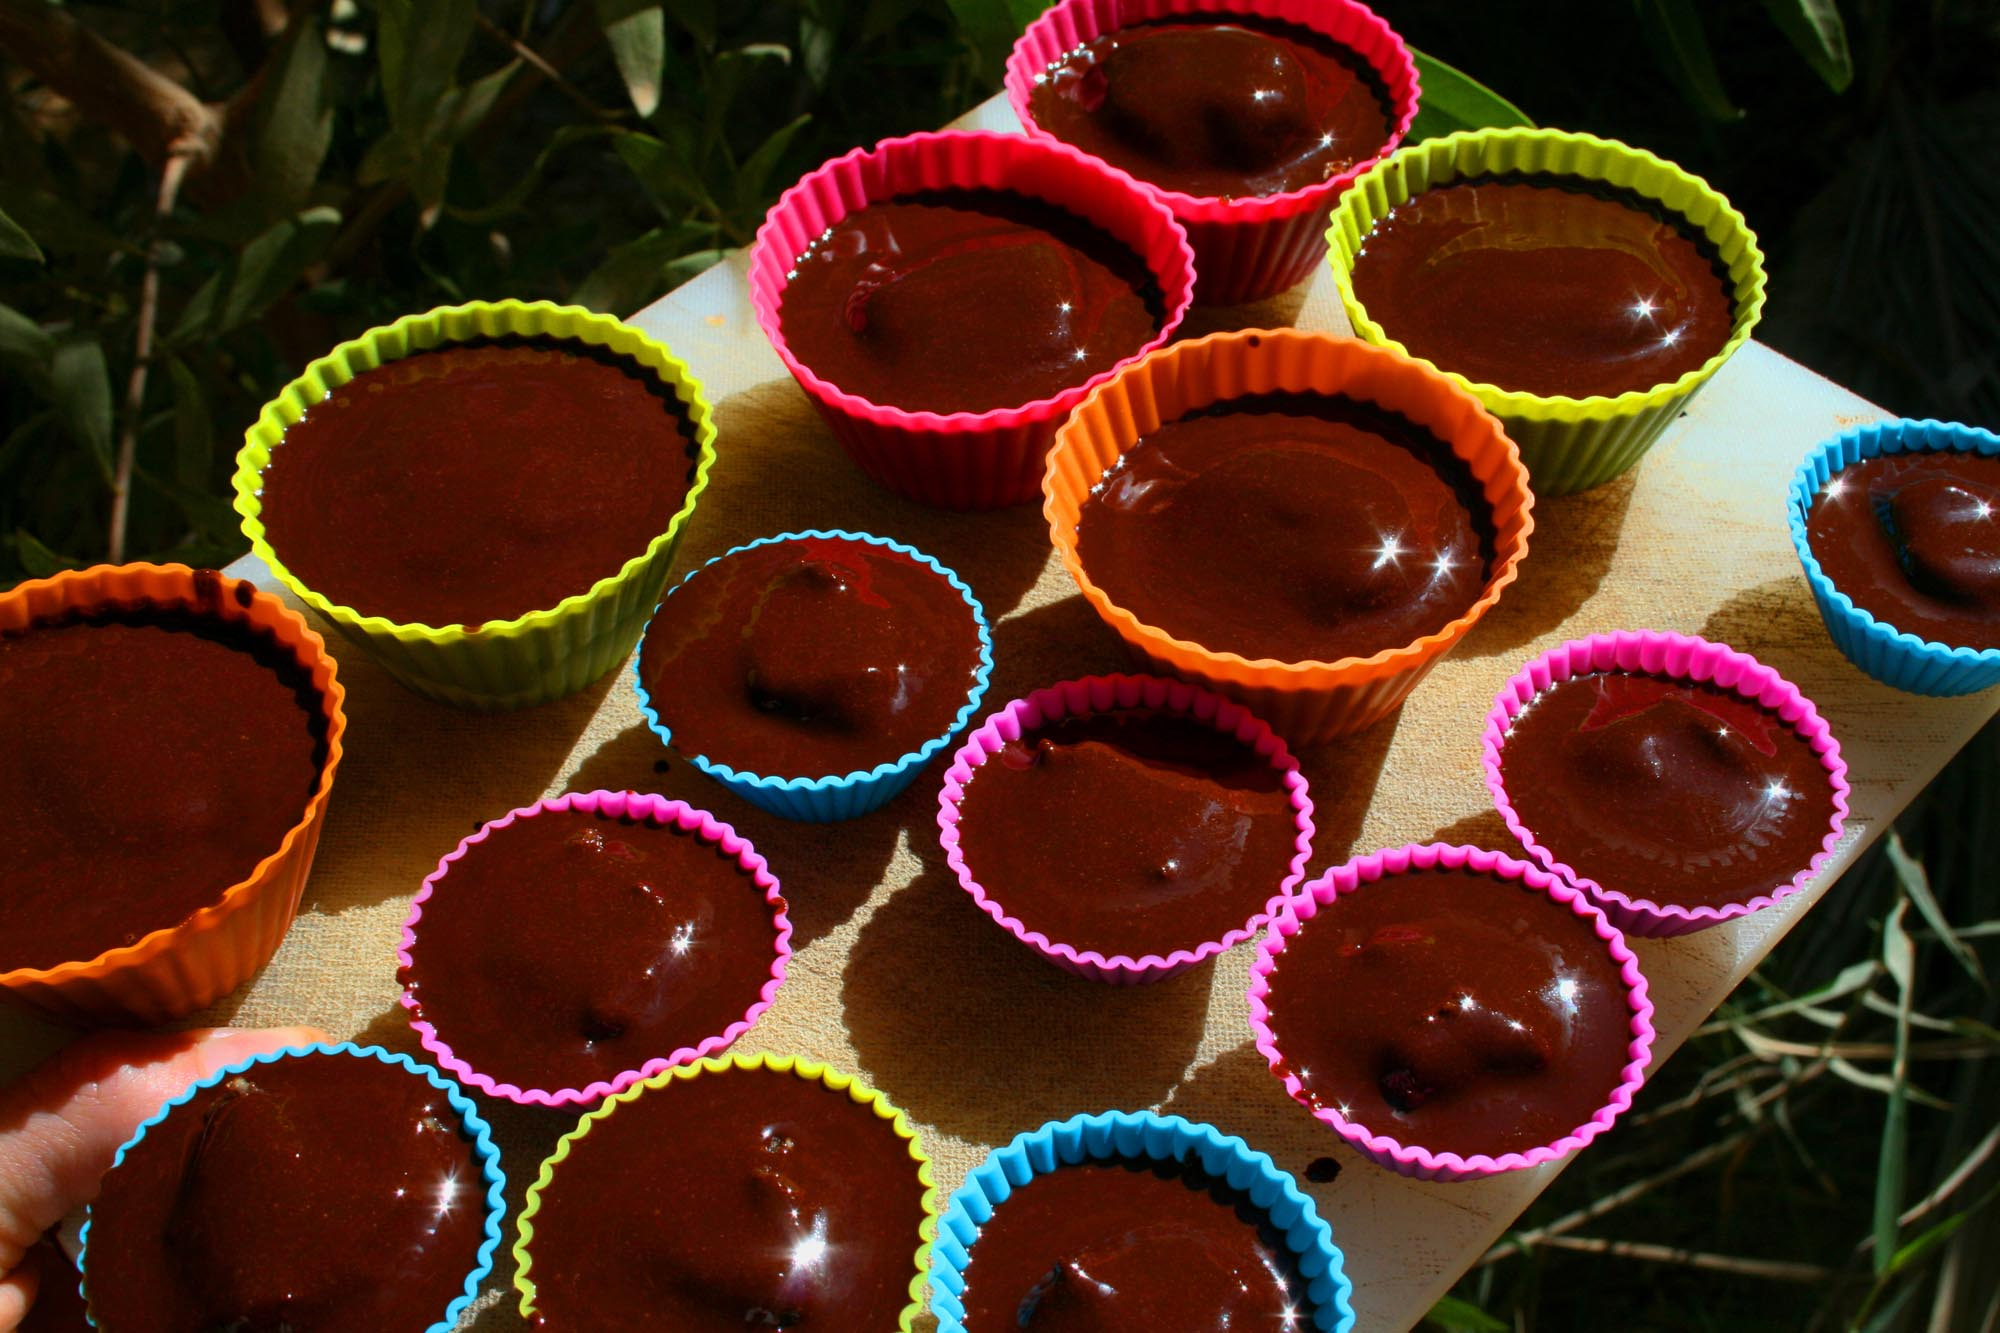 Organic peanut butter cups with raw chocolate